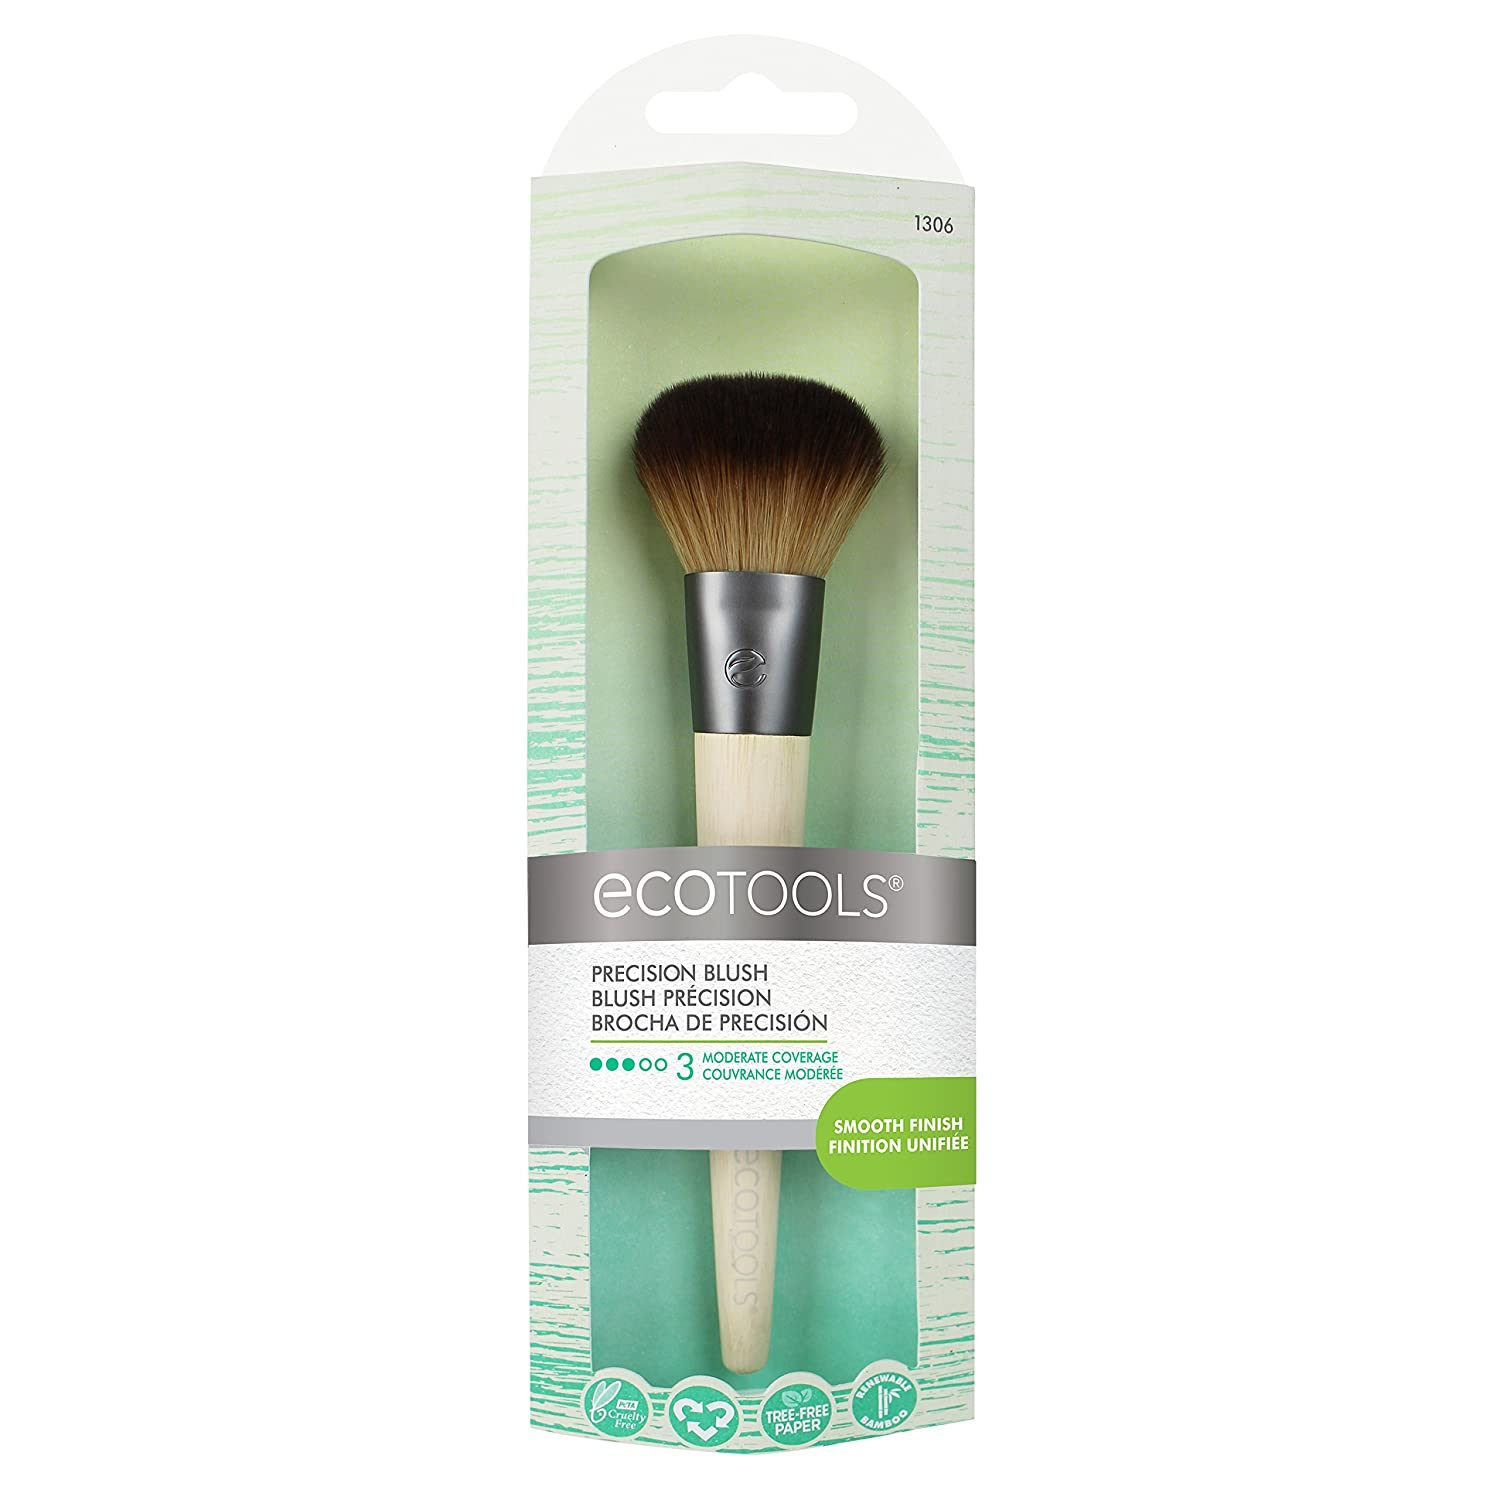 EcoTools Precision Blush Brush, 1-Count 1306